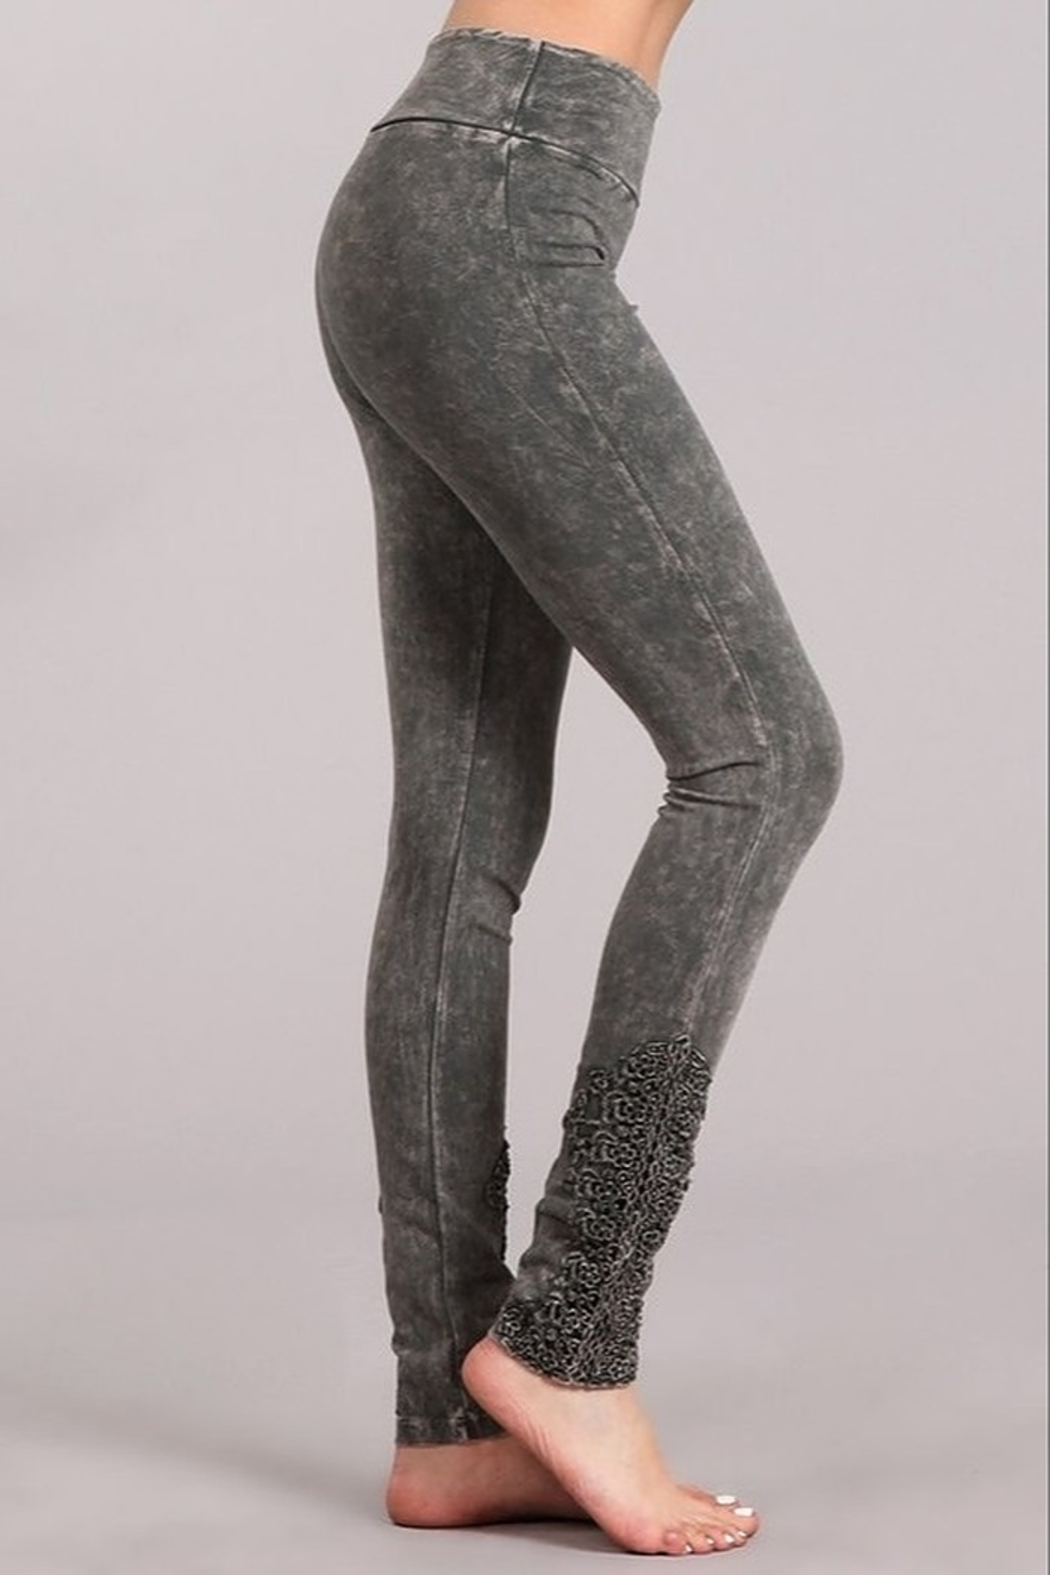 Chatoyant  Snazzy Lace Leggings For Long Legs - Front Cropped Image